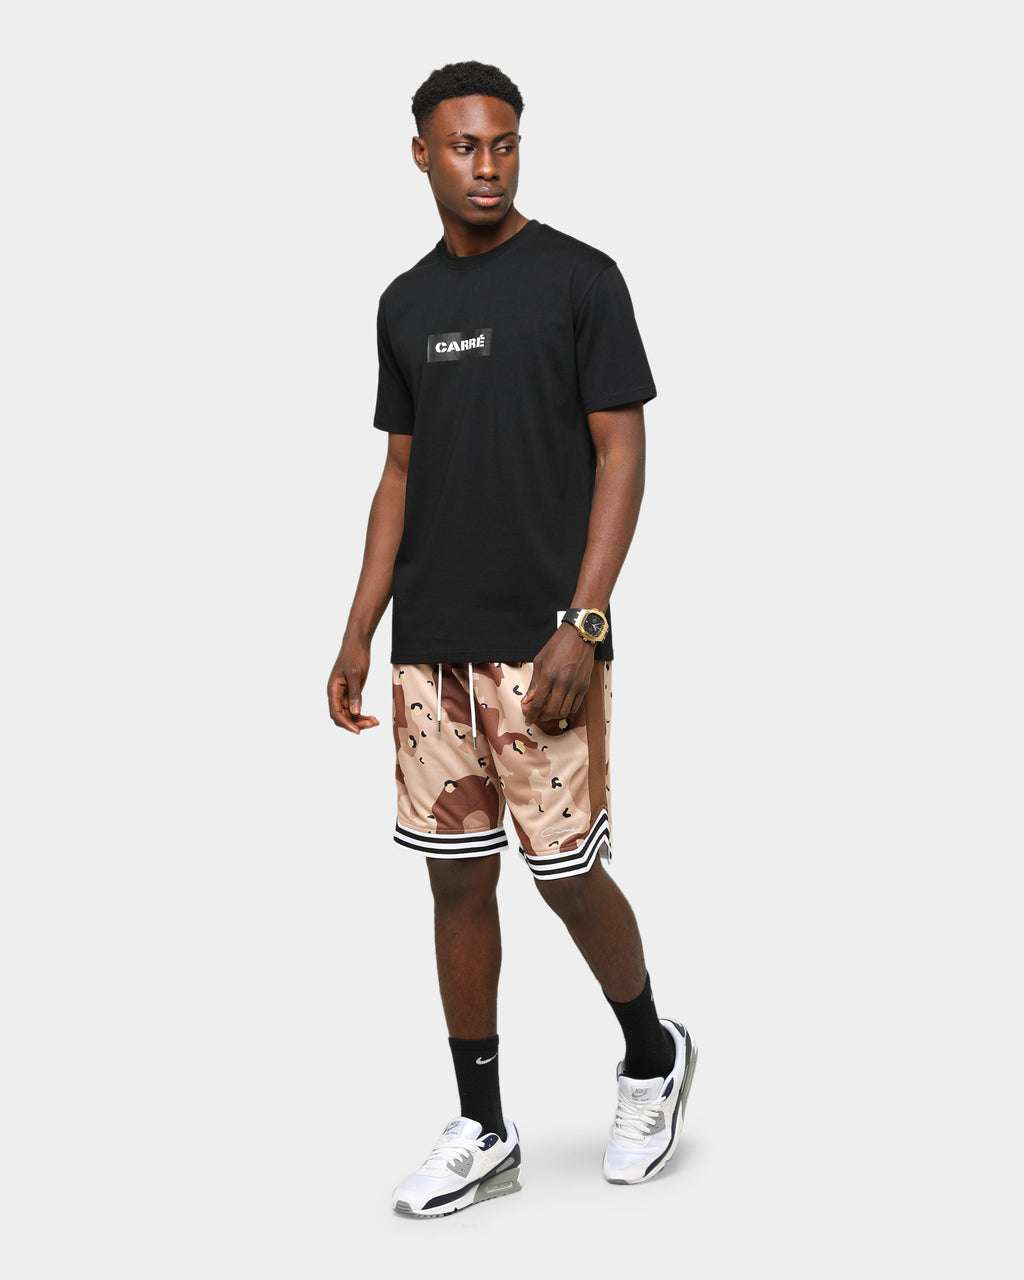 Carré Roadman Classique Short Sleeve T-Shirt Black